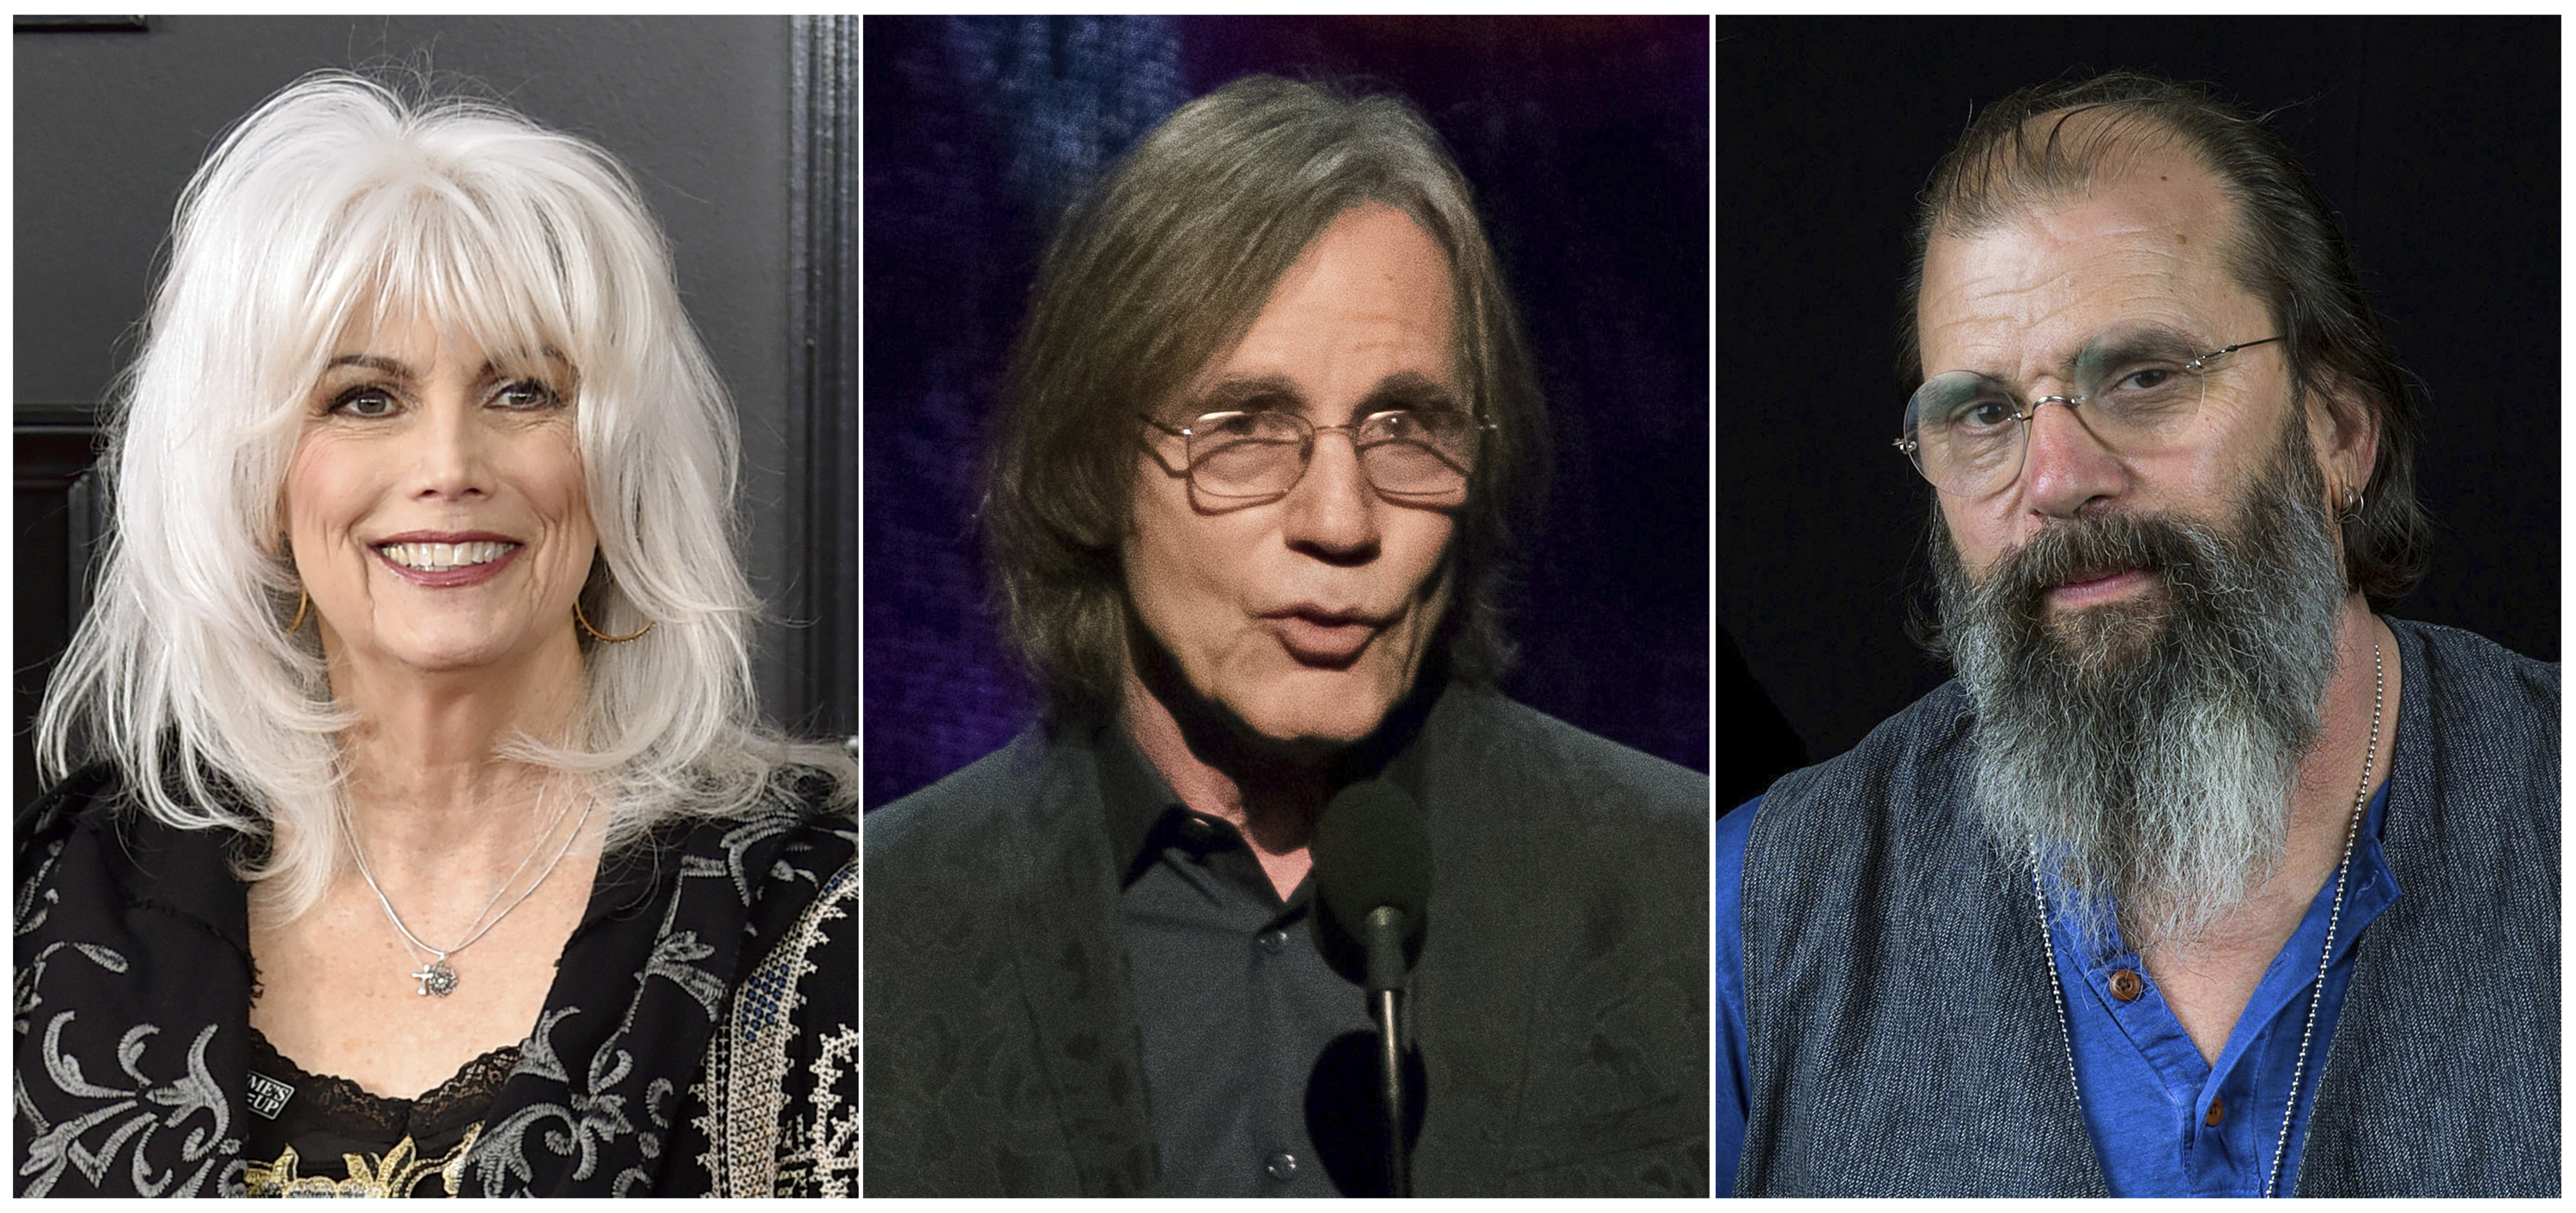 "This combination photo shows, from left, Emmylou Harris, Jackson Browne and Steve Earle, who will be participating in a five-city concert series to support families who have been separated at the border due to immigration policies put into place by the Trump administration. The Women's Refugee Commission announced ""The Lantern Tour: Concerts for Migrant and Refugee Families,"" which will run from Oct. 23 thru Oct. 28. (AP Photo)"